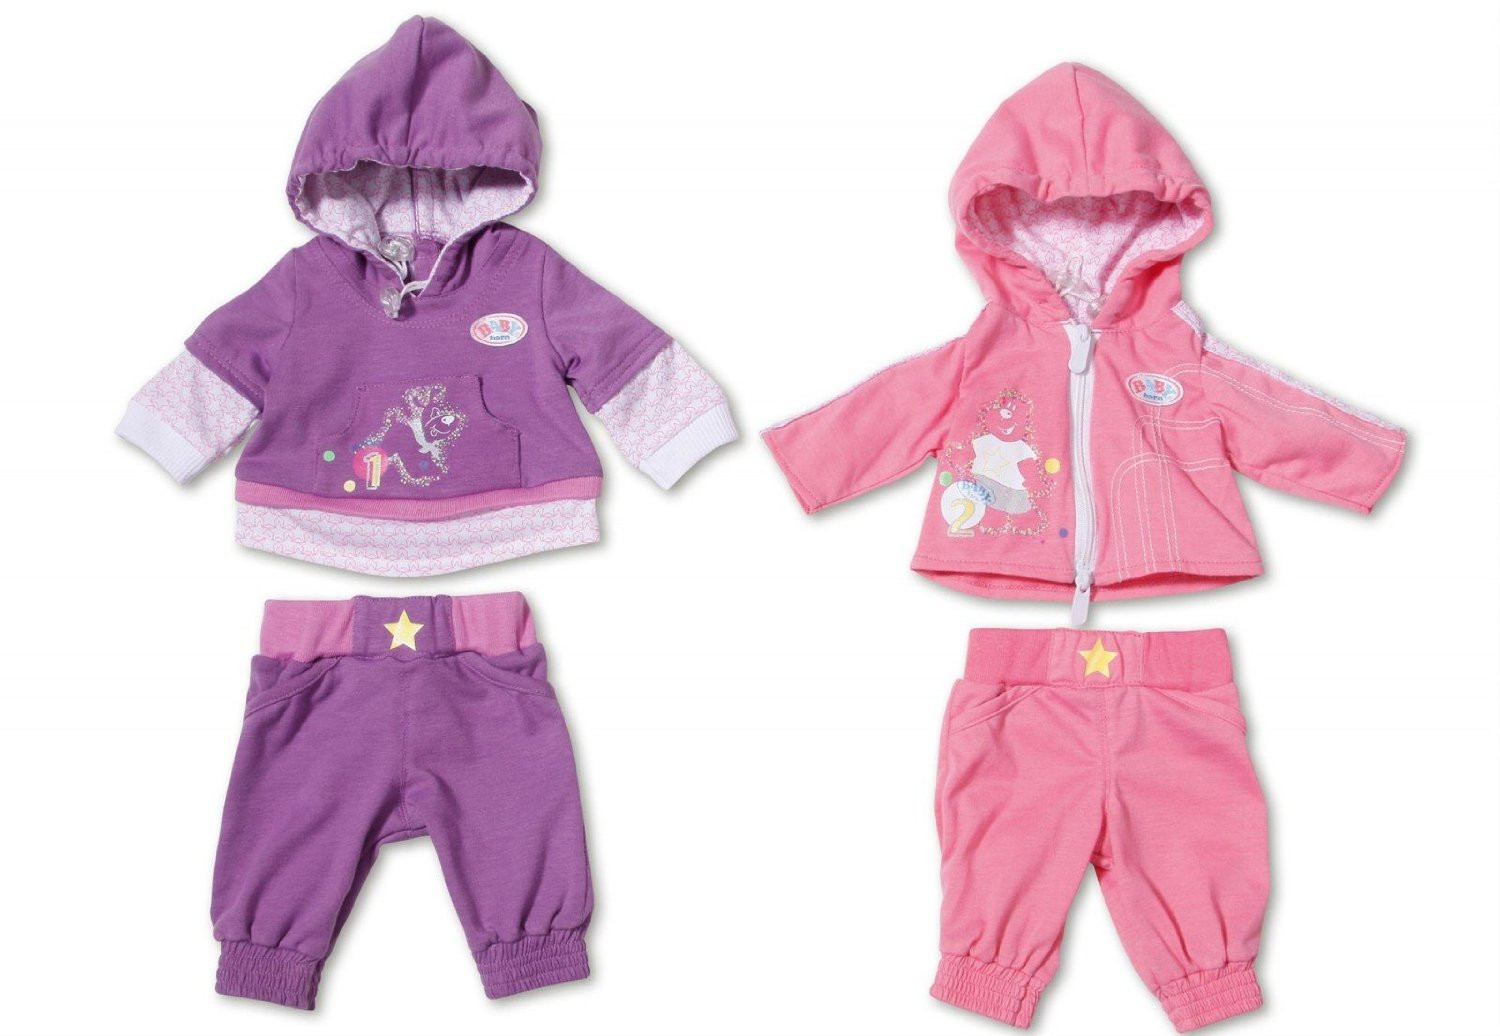 Baby Born Sporty Collection Assortment